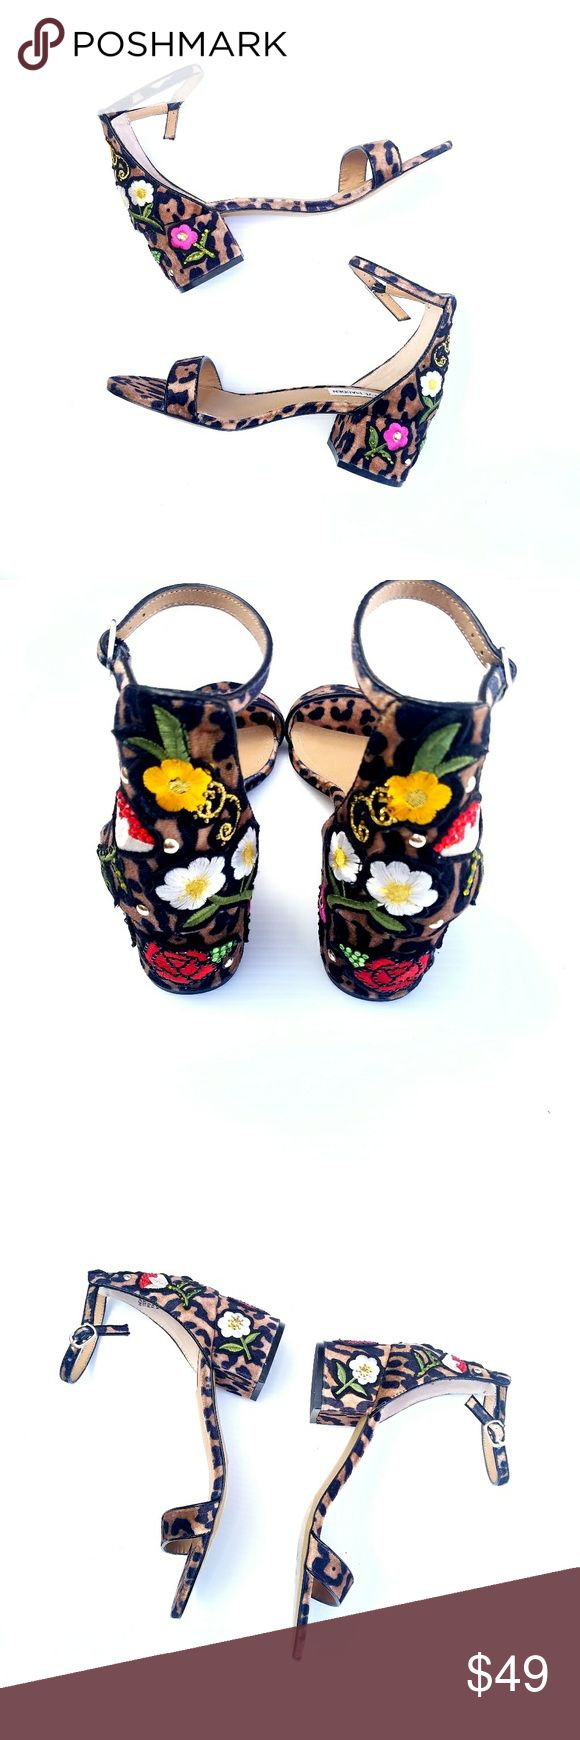 Steve Madden Leopard Embroidered Inca Sandal Steve Madden Leopard Embroidered Strappy Shoes, new without box, never worn, heel ~2 in Excellent, new condition. Feel free to ask me any additional questions. No trades or modeling. Happy Poshing! Steve Madden Shoes Sandals